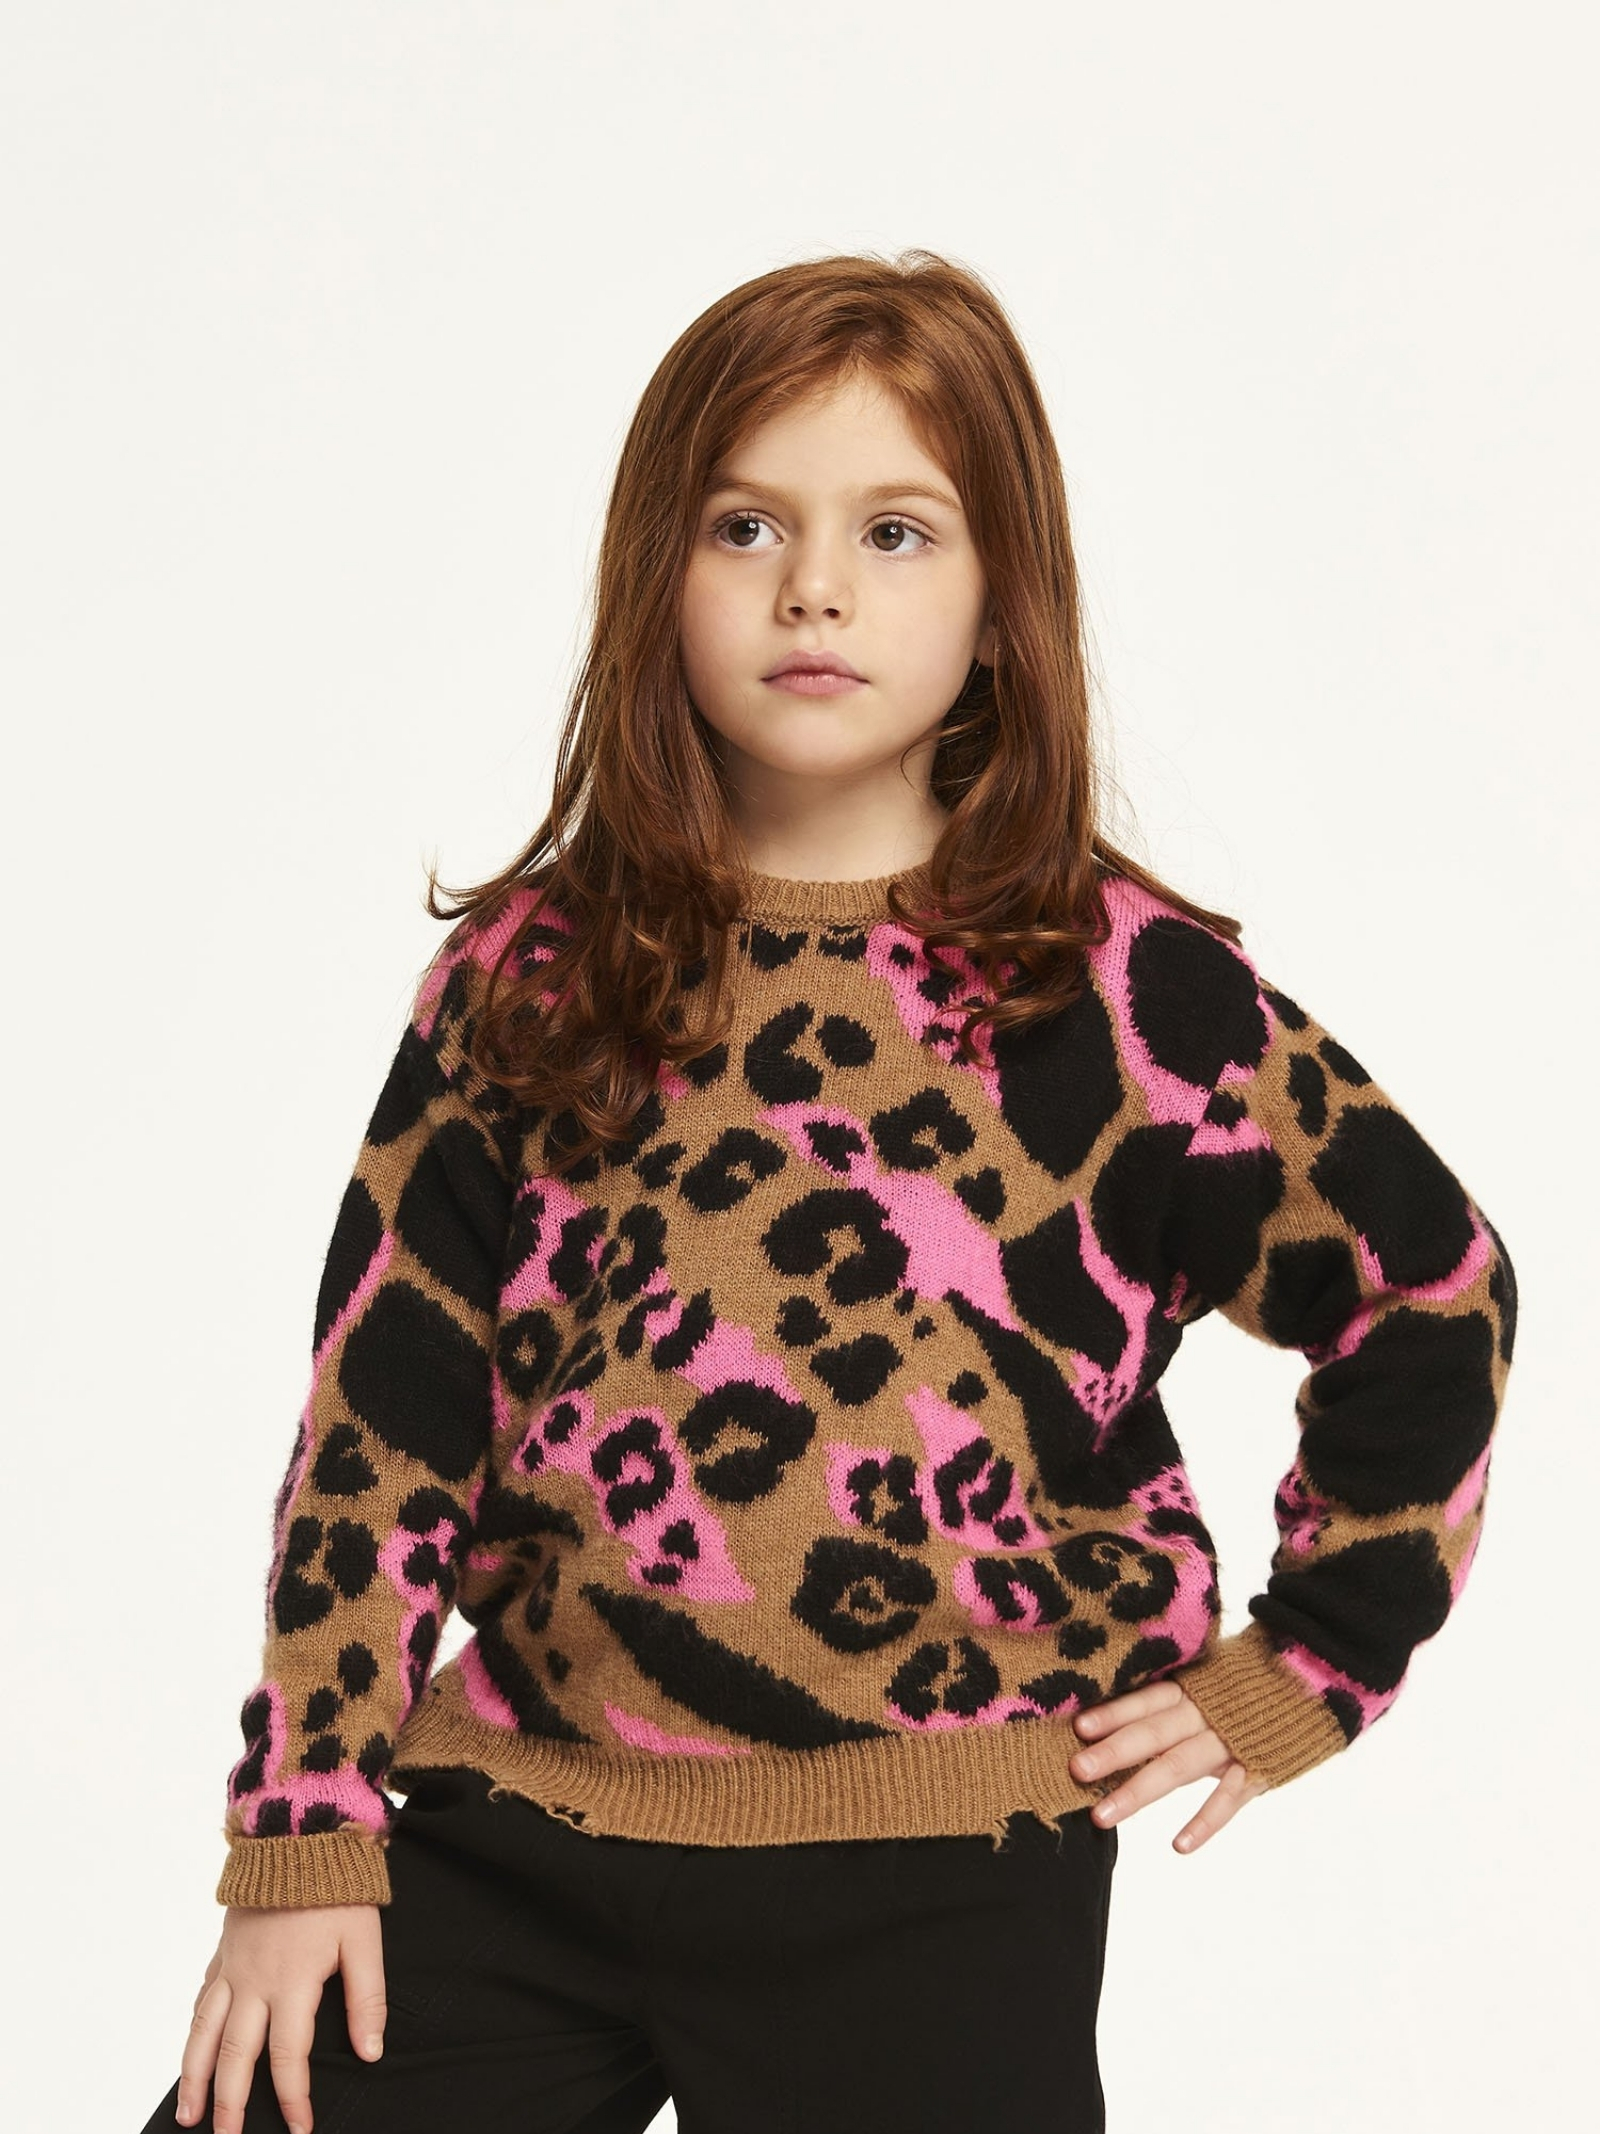 Girl's Fringed Sweater ANIYE BY GIRL | Sweaters | 11110200405